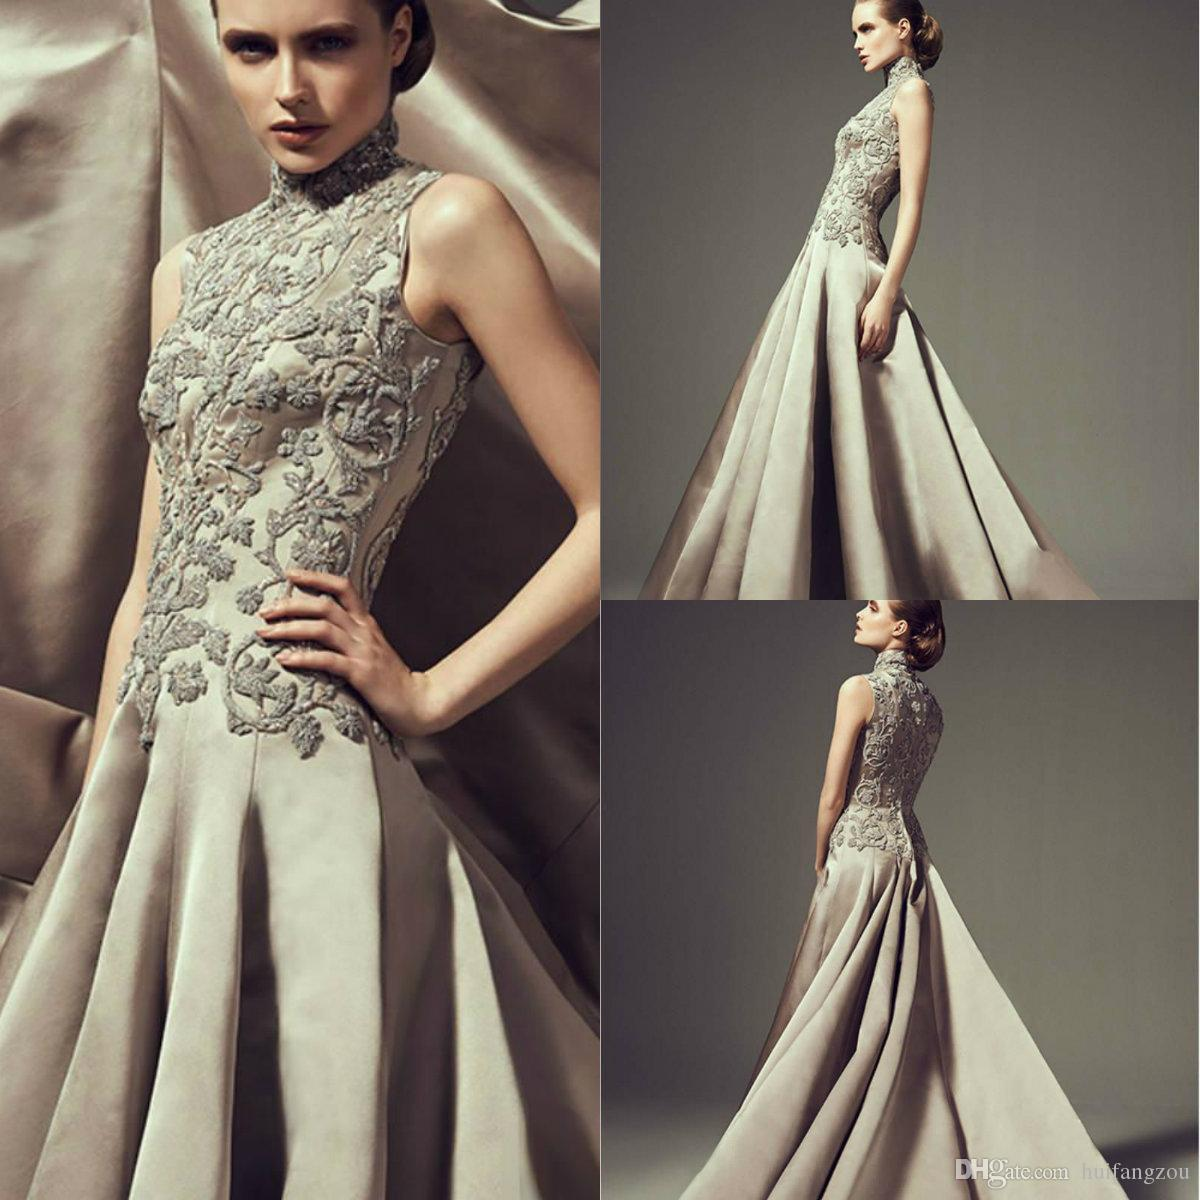 Ashi Studio 2018 Prom Dress A Line High Neck Champagne Applique Design Sweep Train Prom Dresses Custom Made Evening Gowns With Couture Prom Dresses Cute Short Prom Dresses From Huifangzou 138 31 Dhgate Com